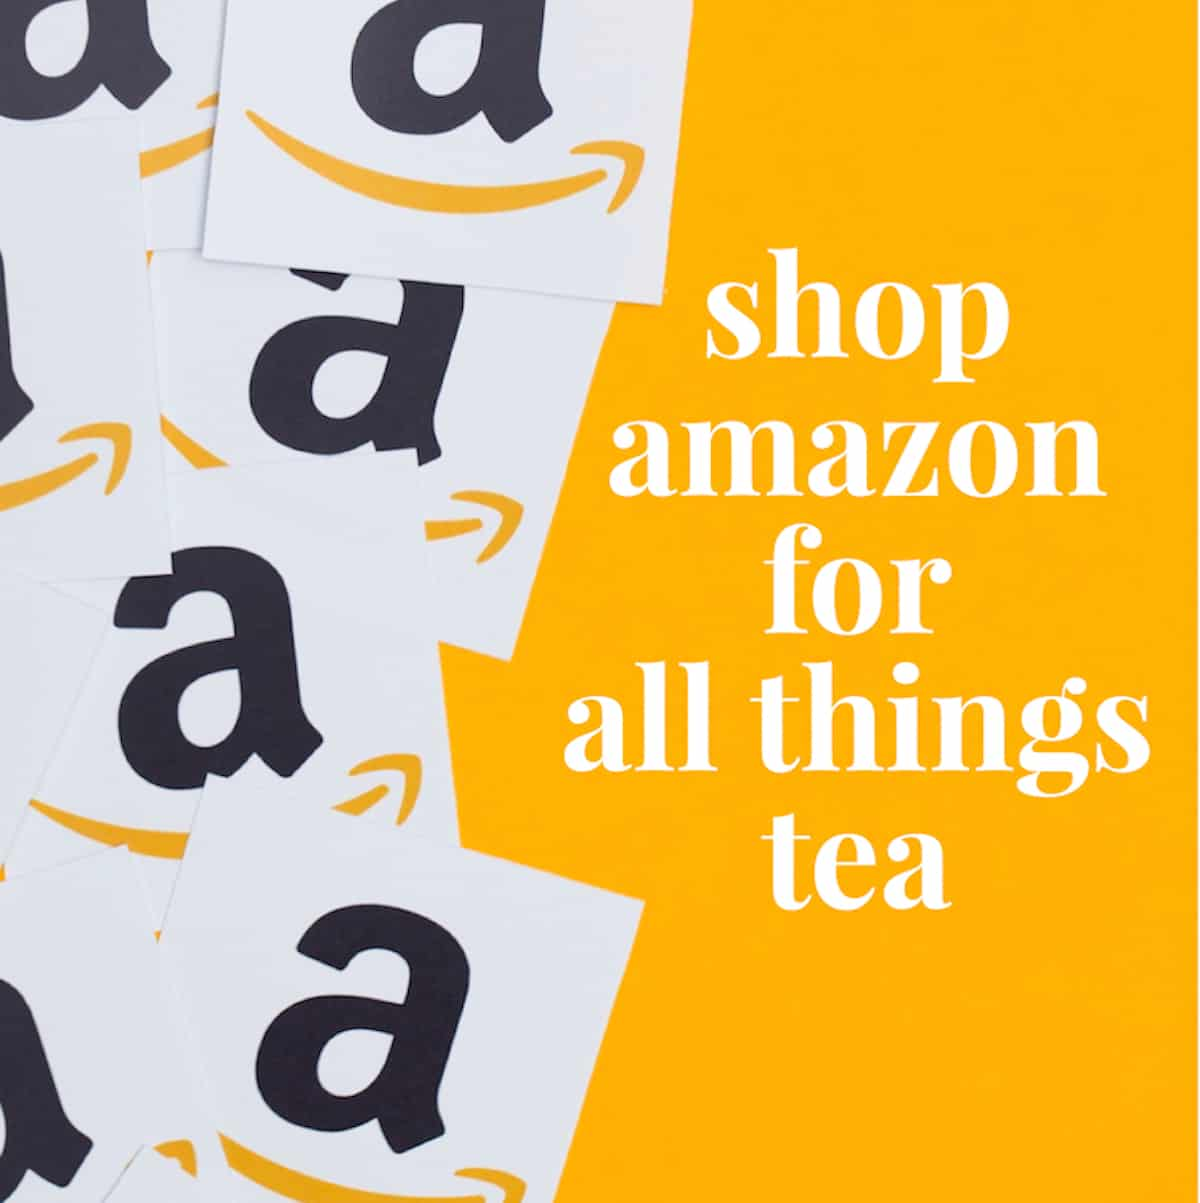 Shop Amazon Tea Brands for all things tea